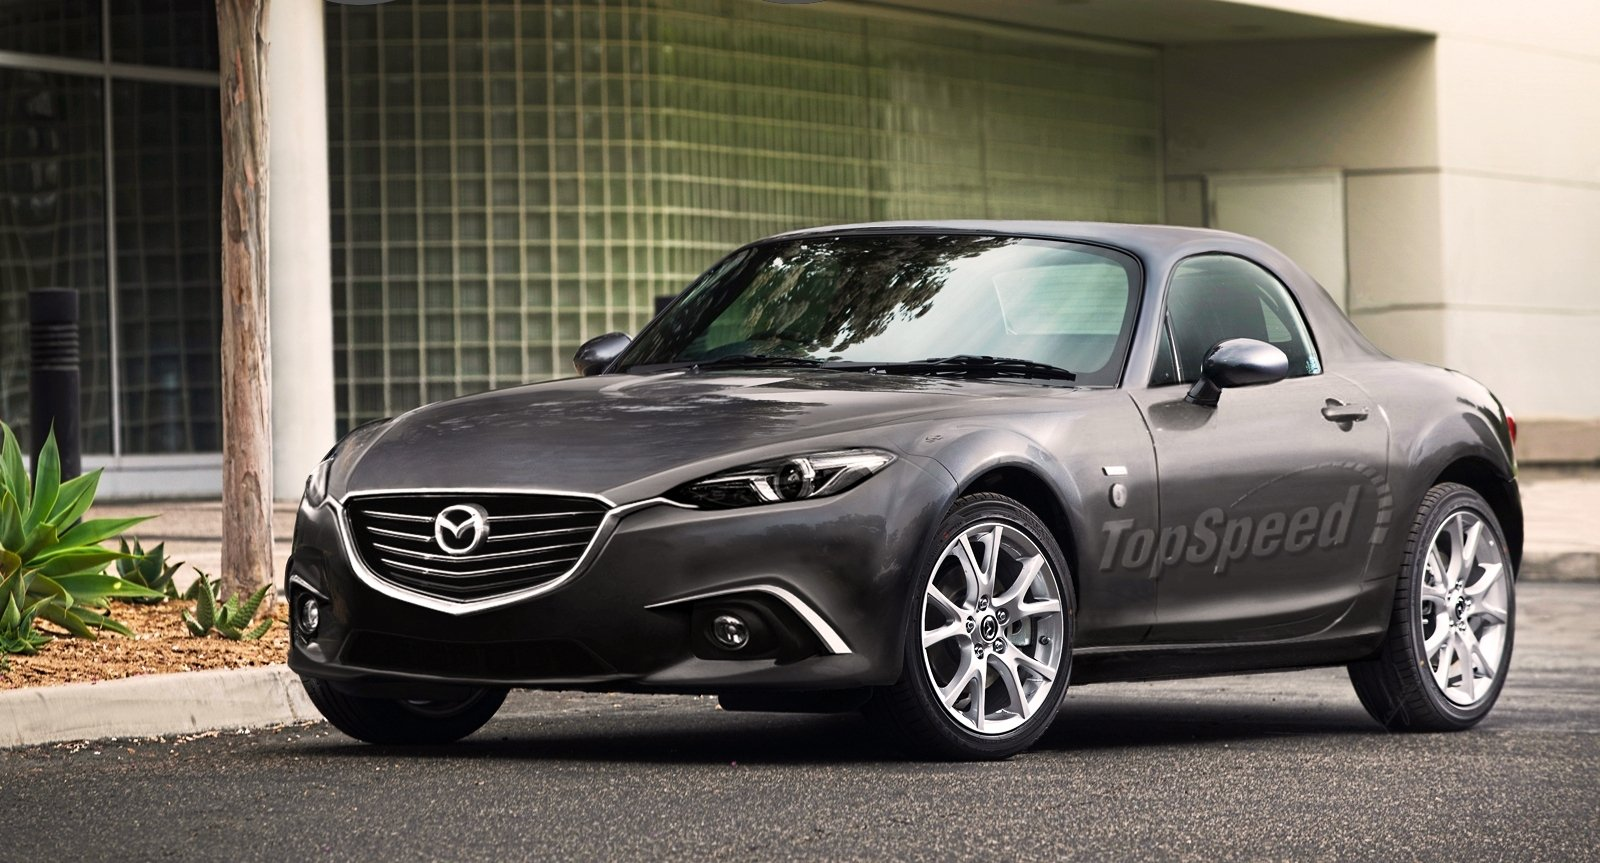 2017 mazda mx 5 coupe picture 566759 car review top speed. Black Bedroom Furniture Sets. Home Design Ideas